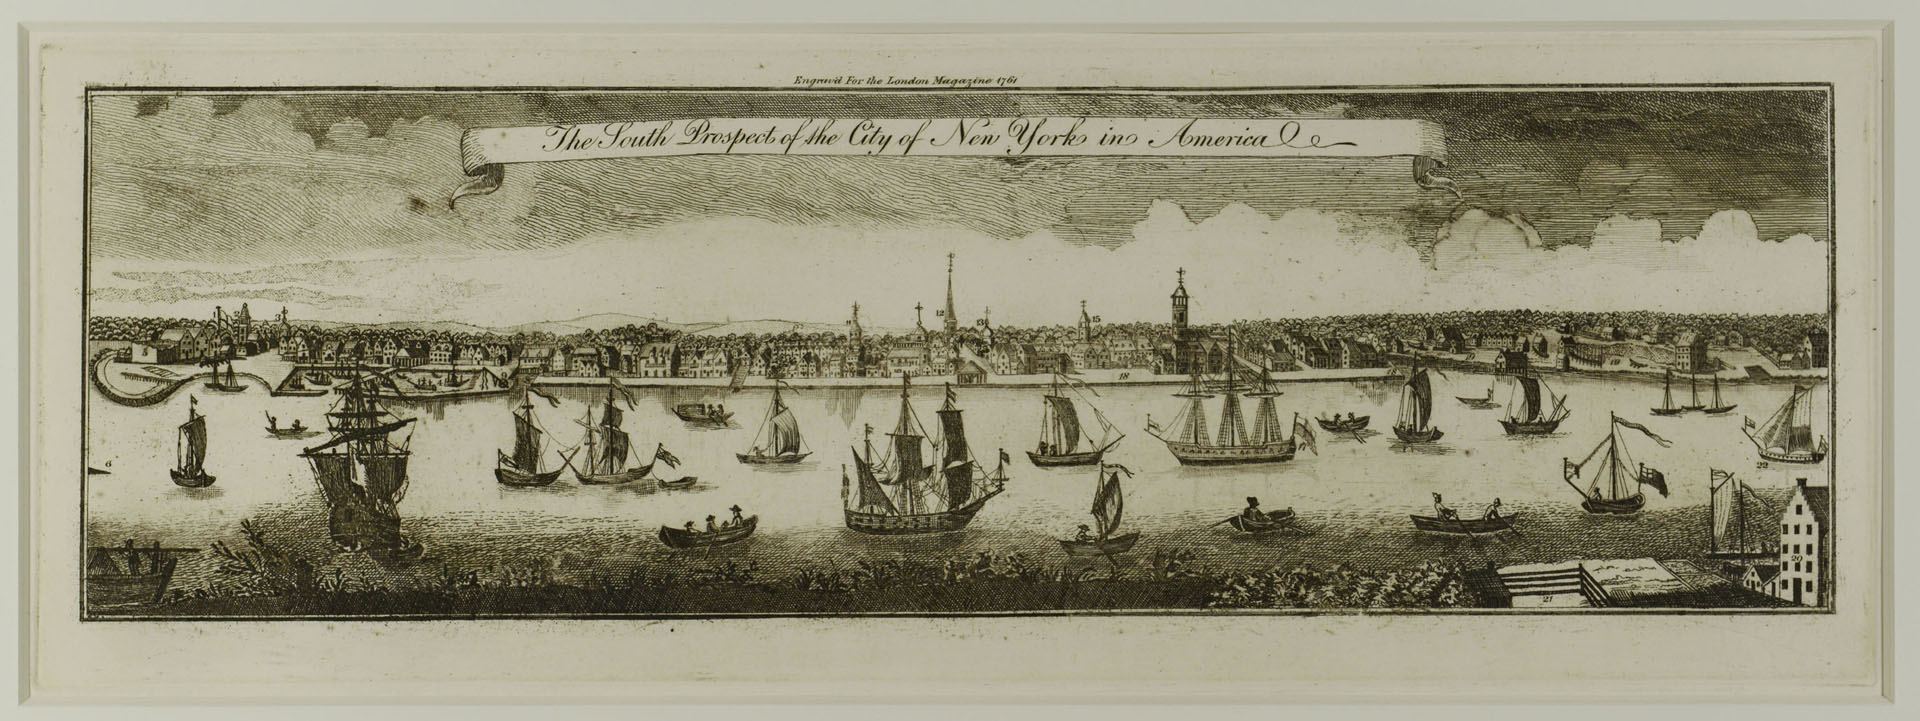 Engraving of the City of New York, after 1761